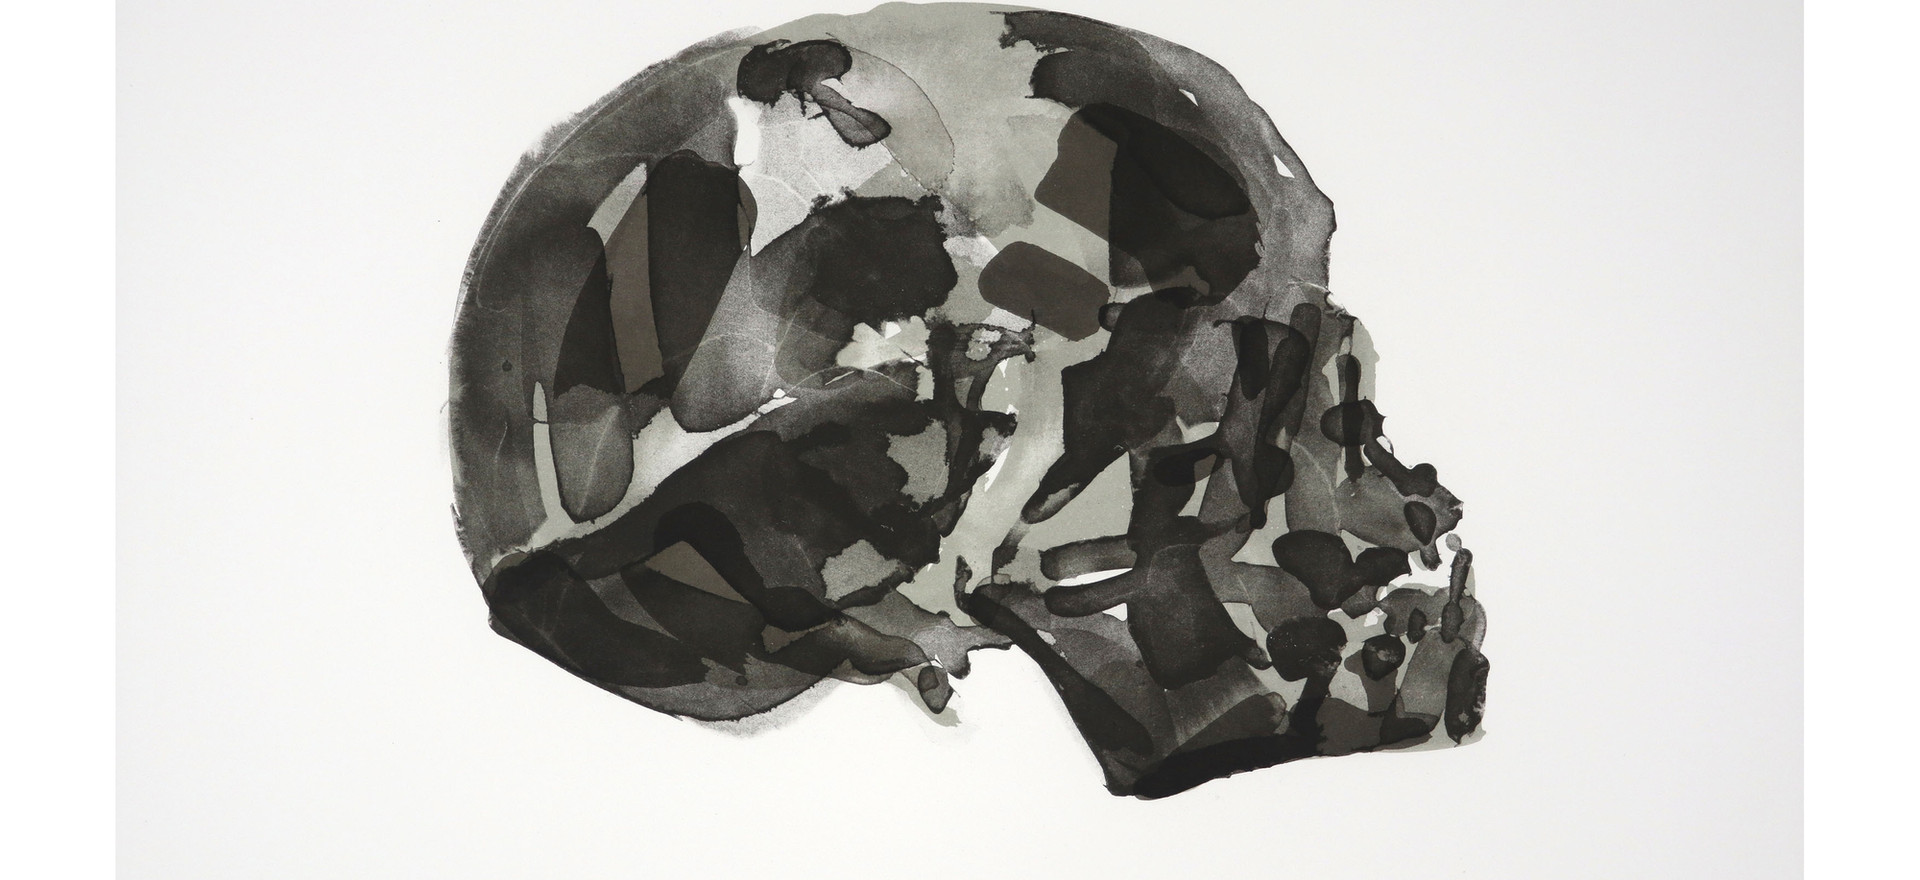 'Articulated (left)', 2017, lithograph, 43.3 x 53 cm